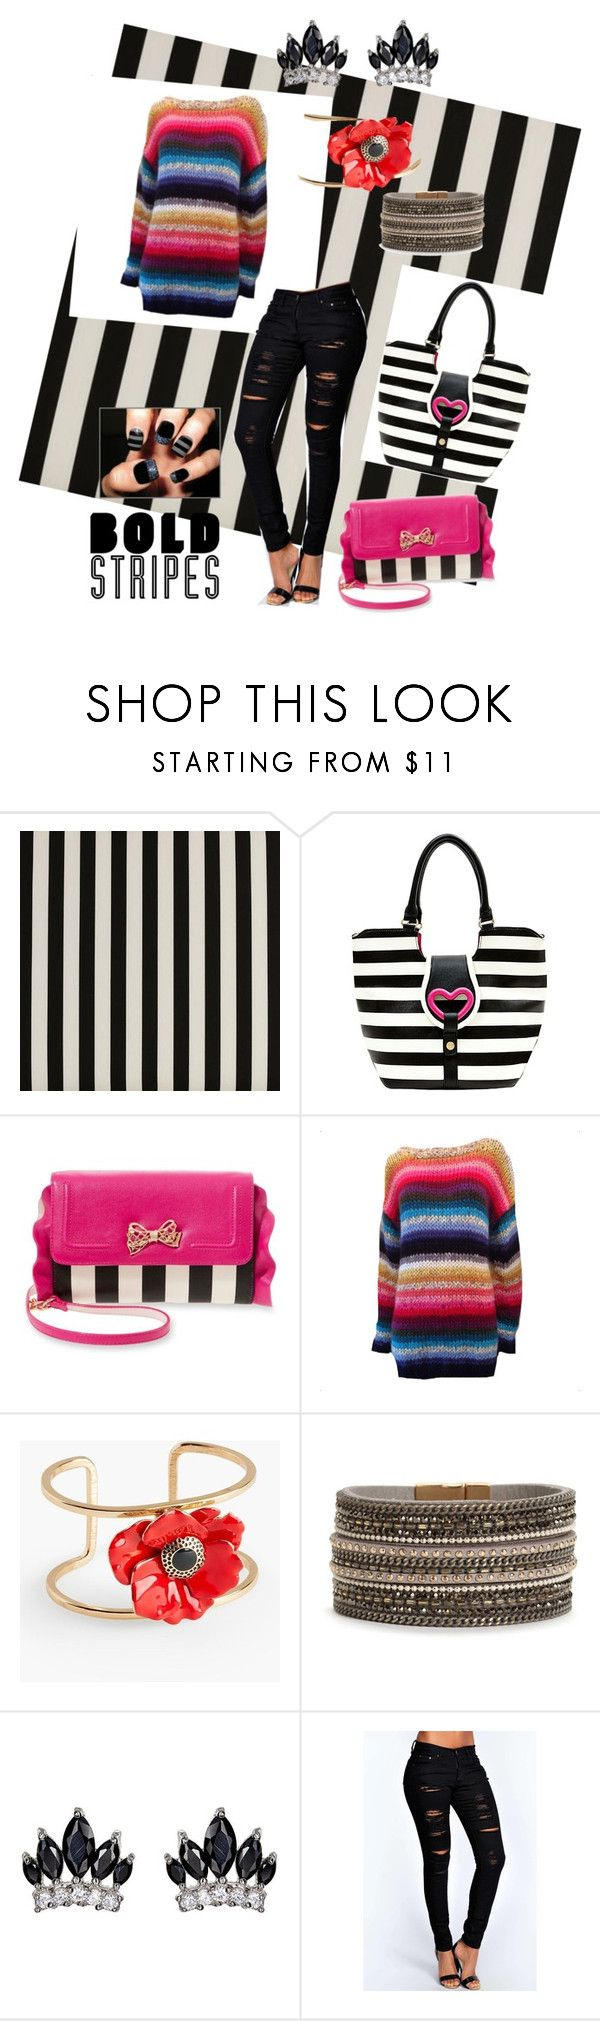 """""""Bold stripes"""" by stina715 ❤ liked on Polyvore featuring Cost Plus World Market, Betsey Johnson, Rose Carmine, Talbots, Fallon, Boohoo, stripes and BoldStripes"""